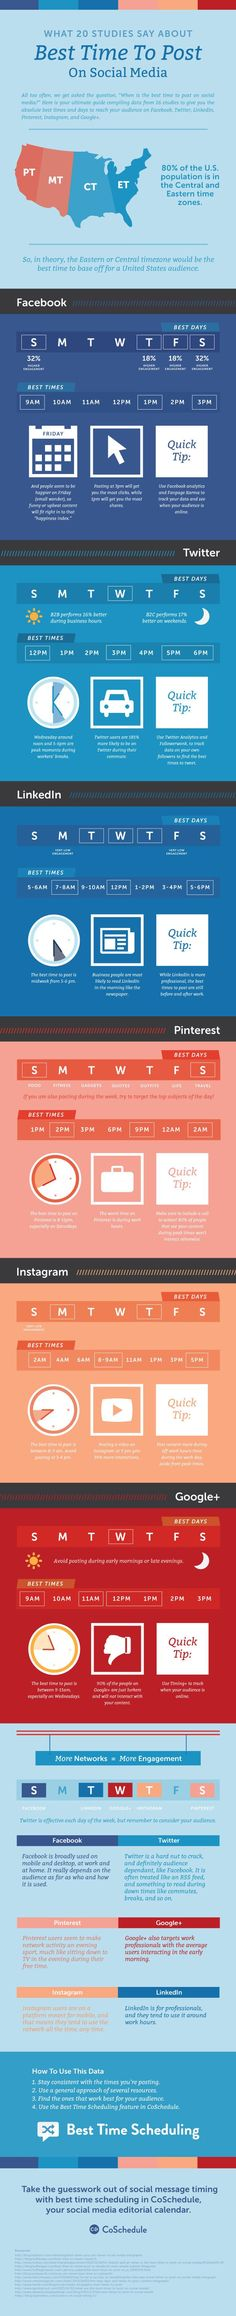 The Definitive Report About the Best Times to Post on Social Media [Infographic]